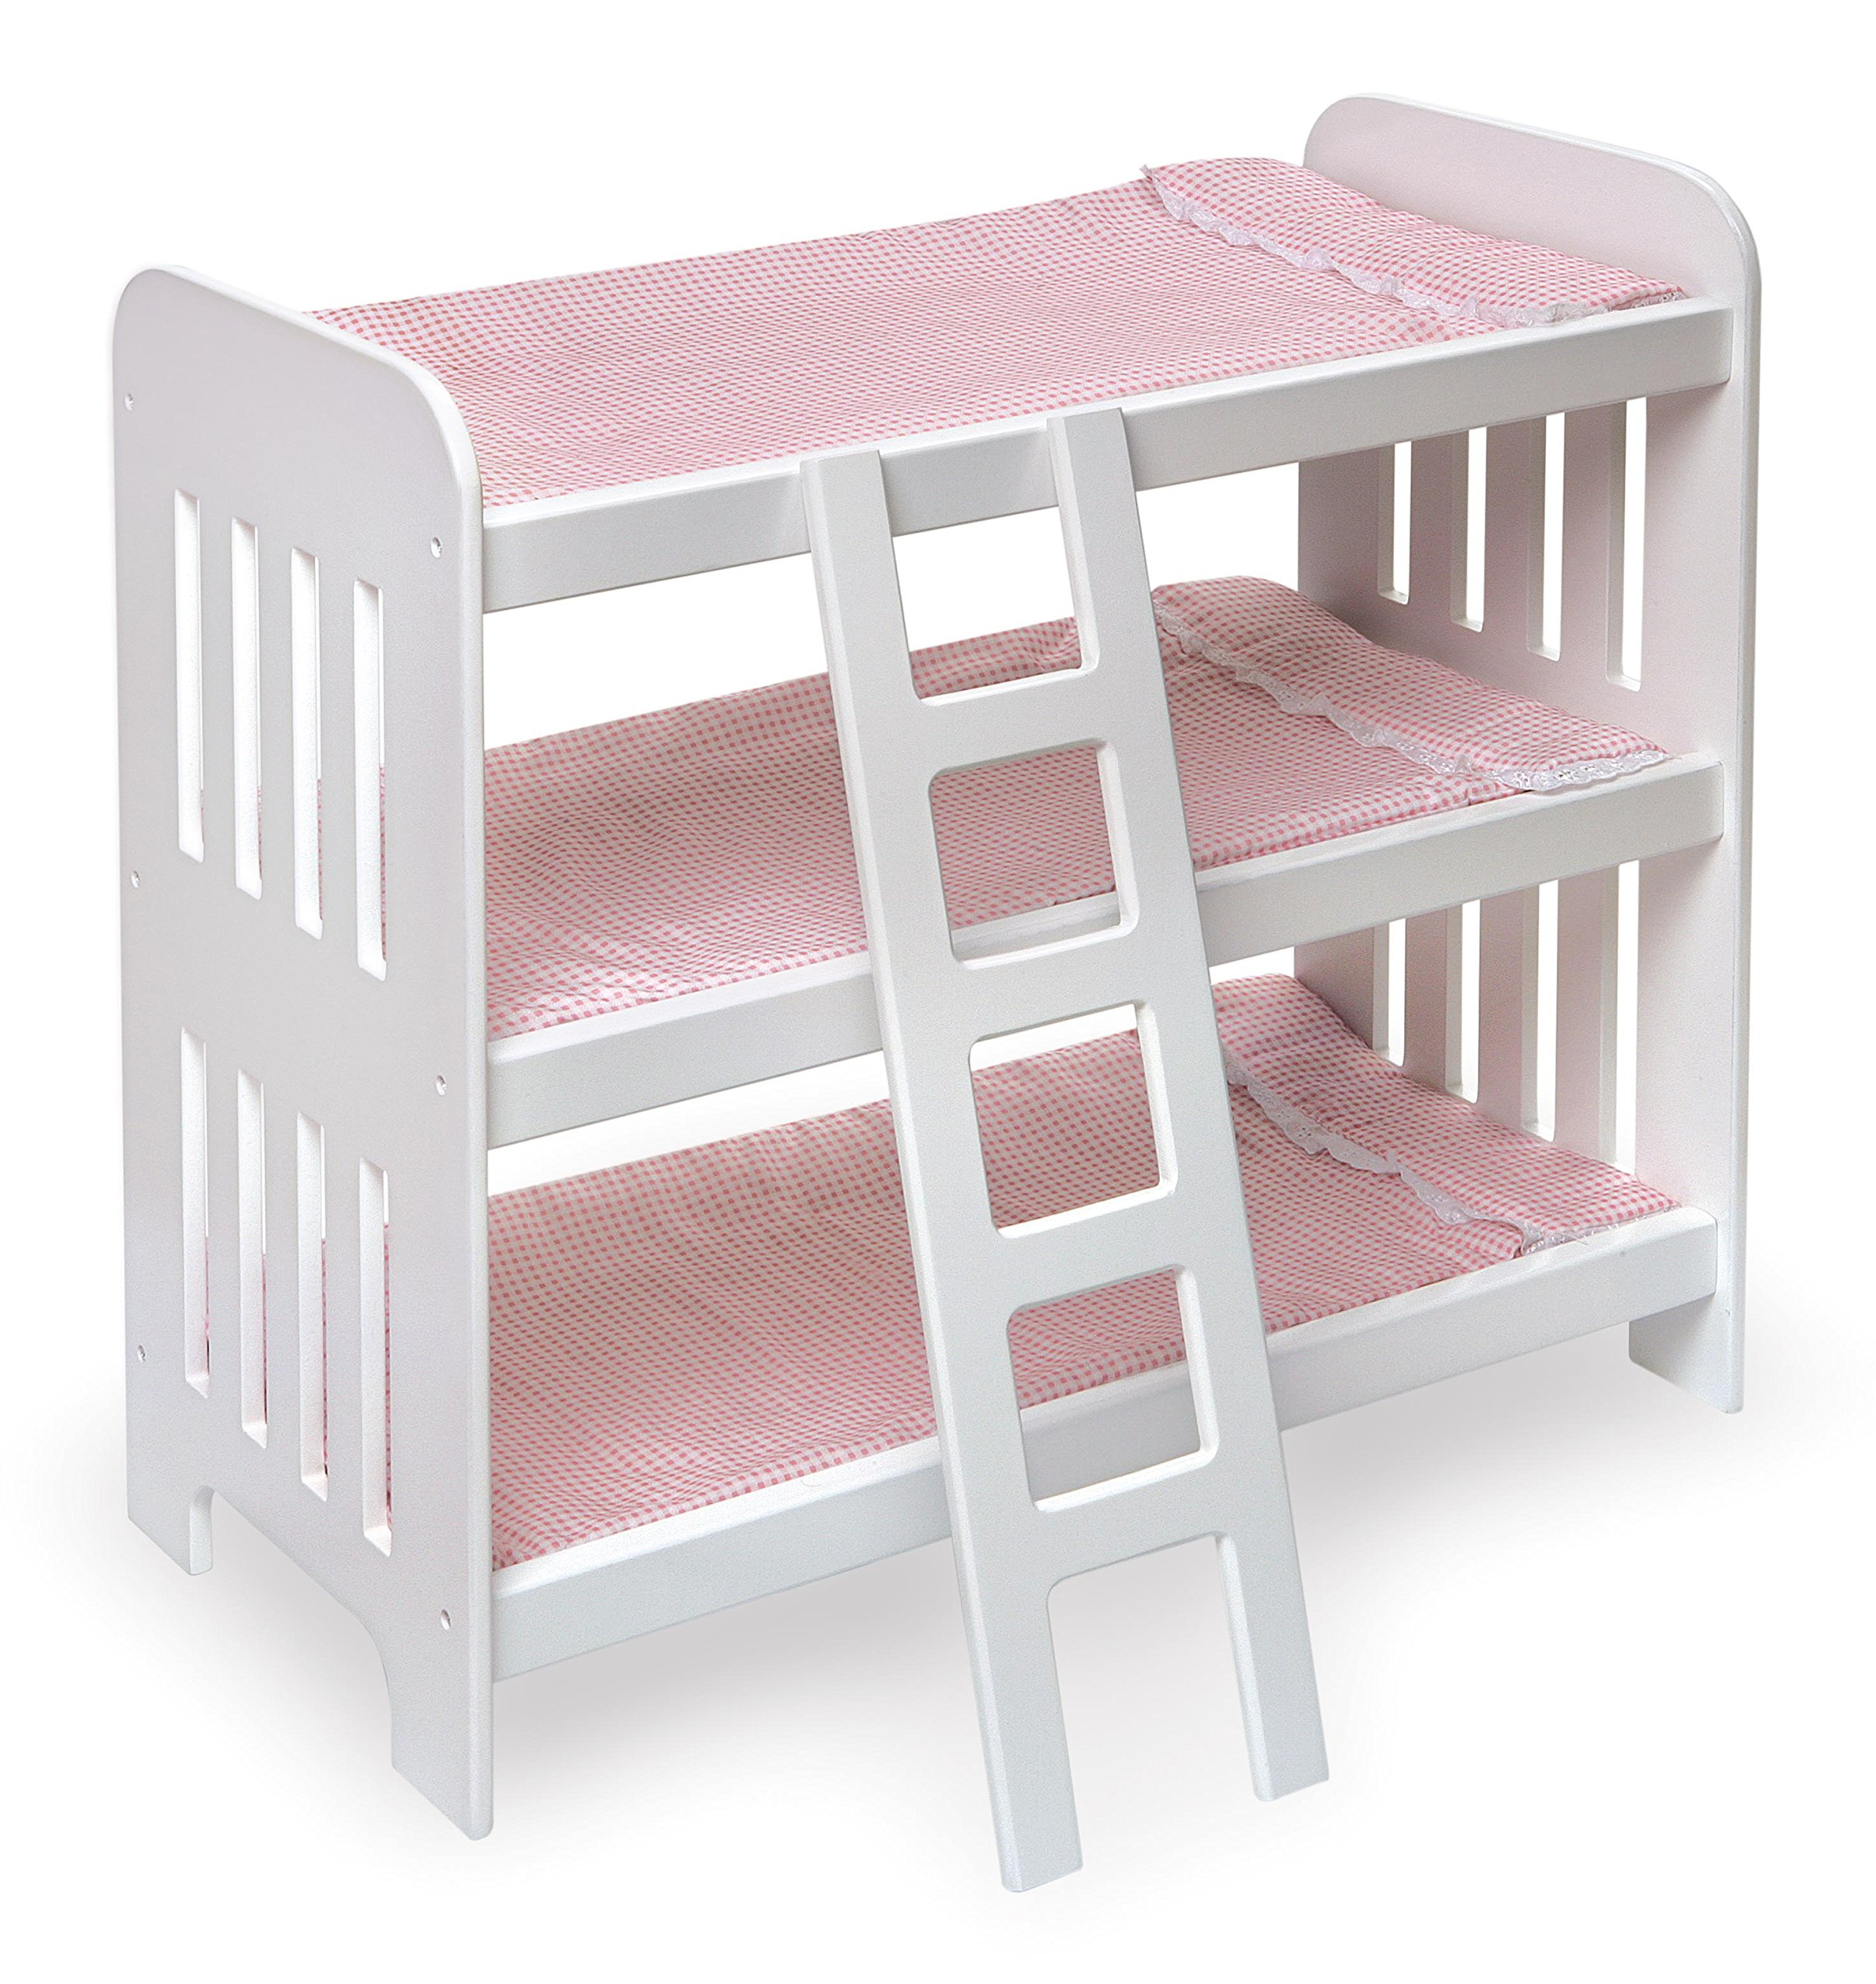 Triple Doll Bunk Bed with Ladder, Bedding, and Free Personalization Kit (fits American Girl Dolls) by Badger Basket